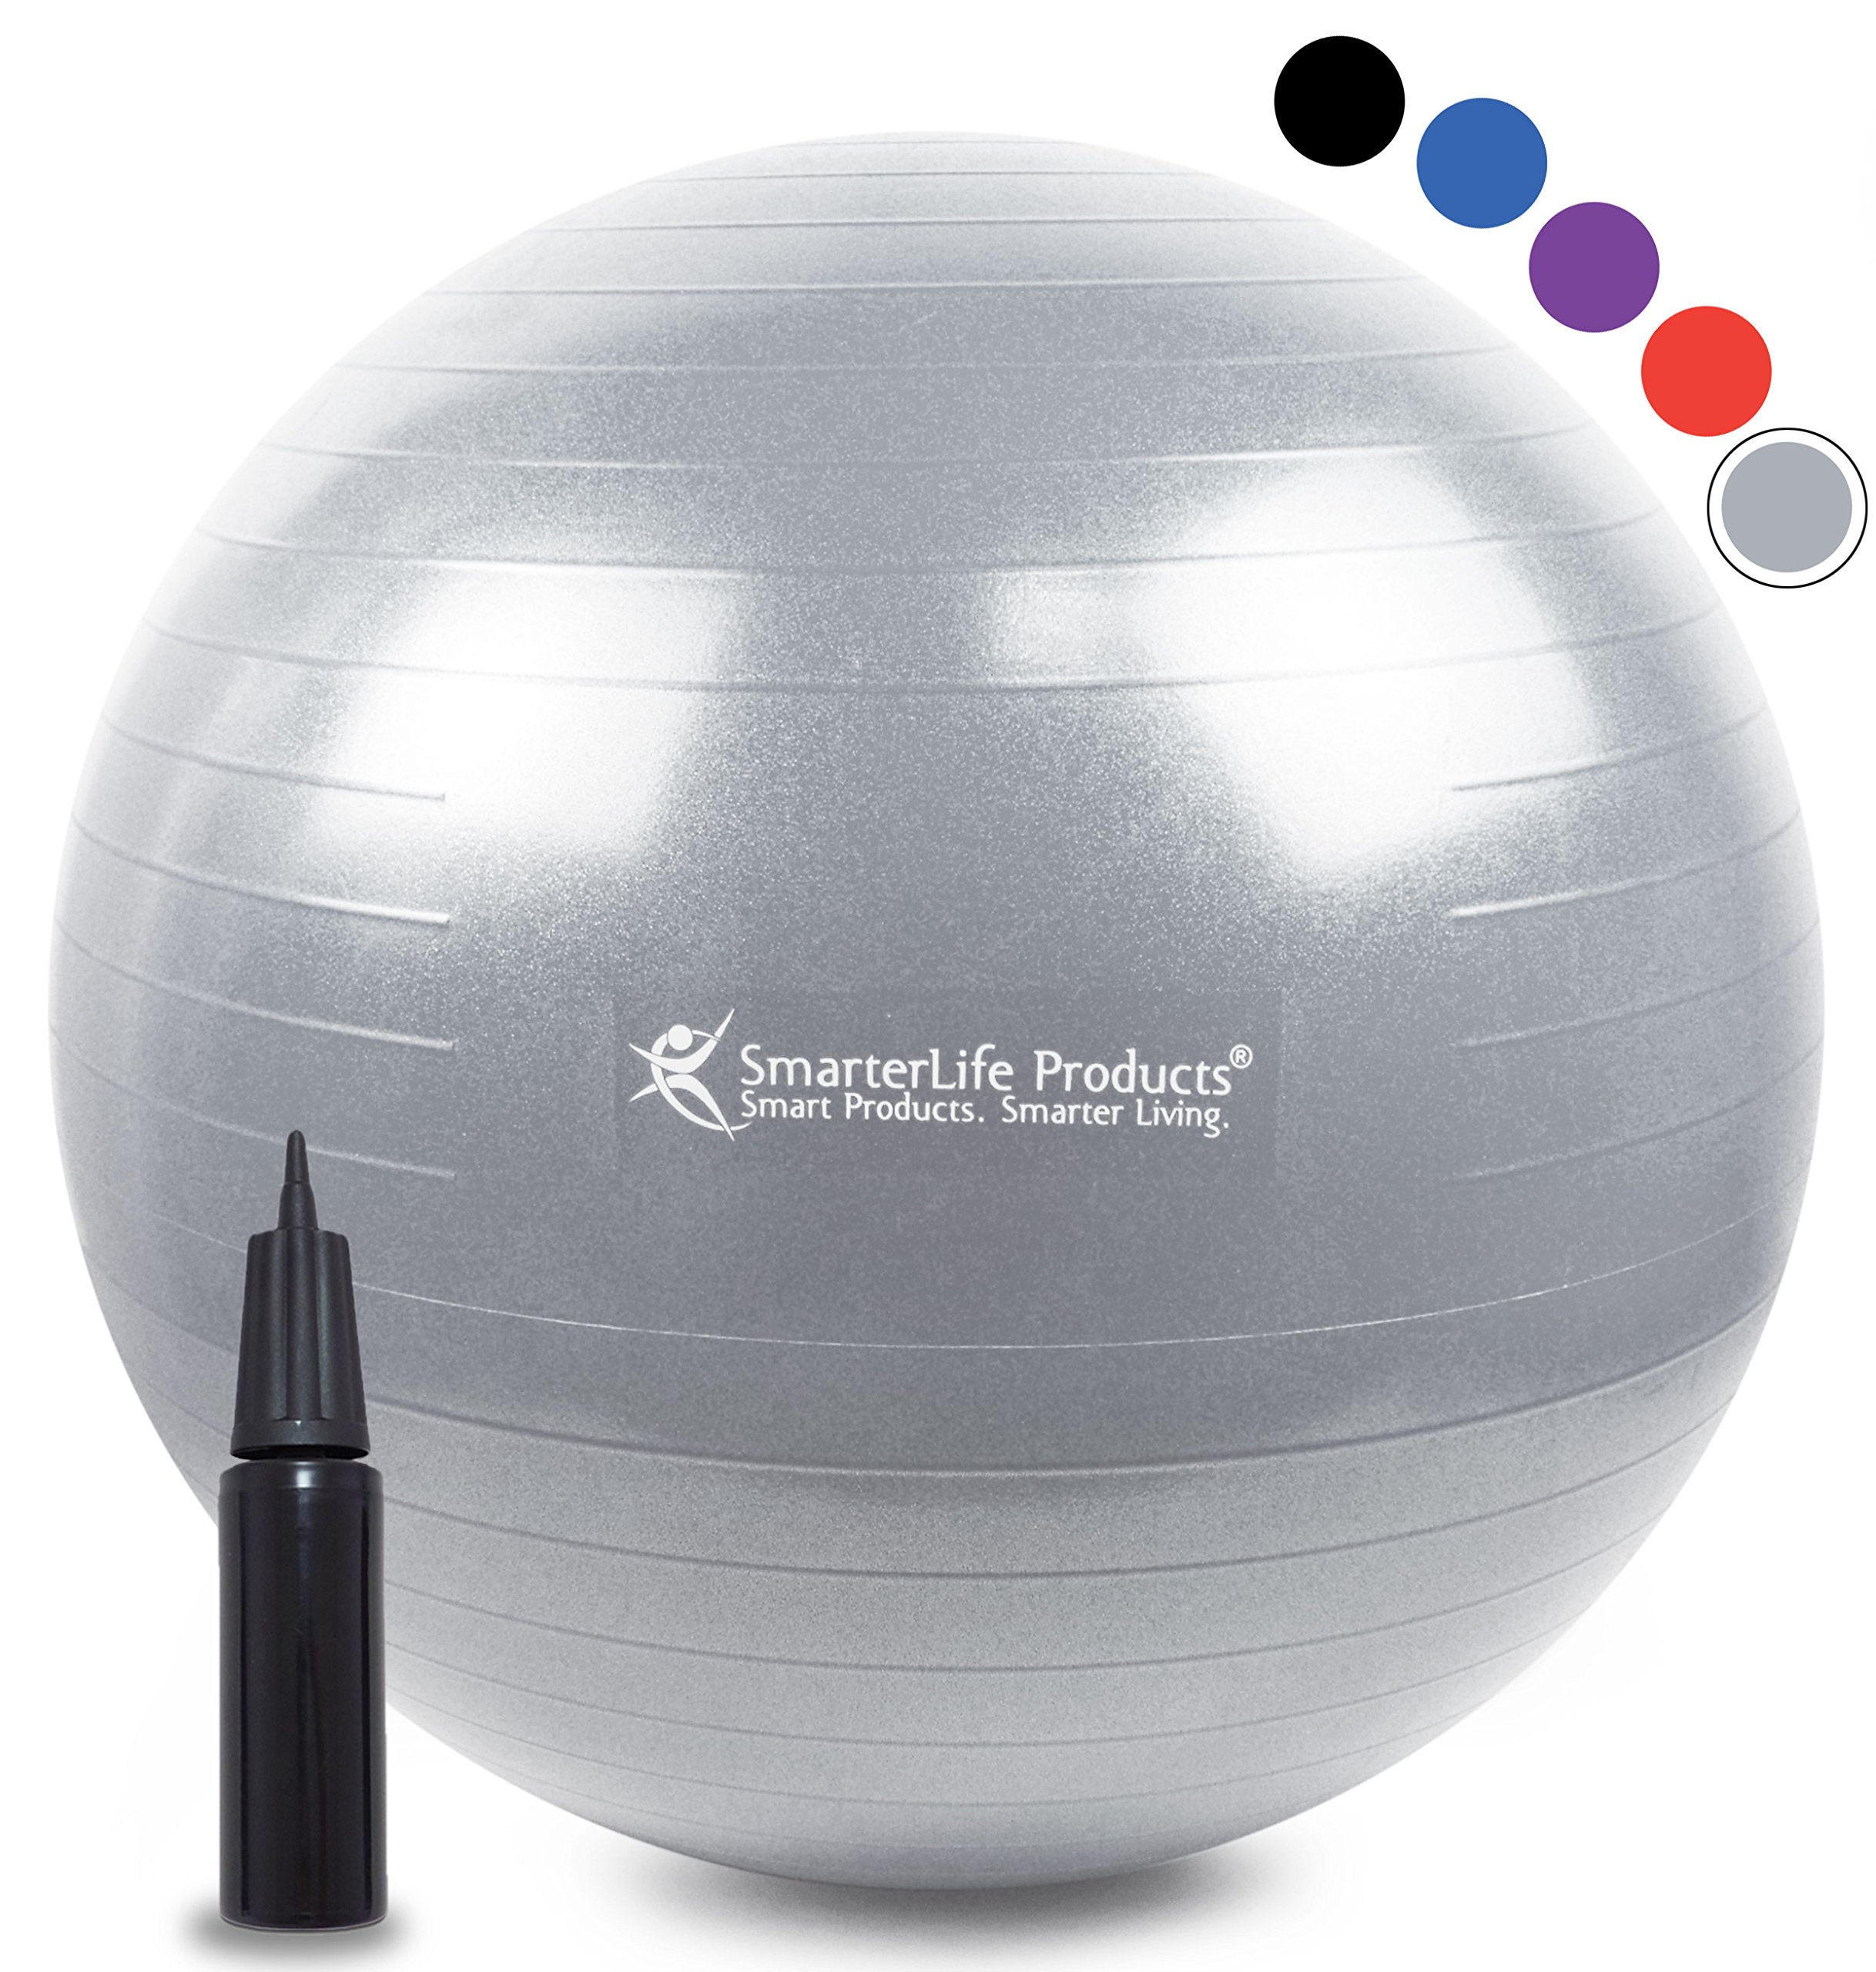 Exercise Ball for Yoga, Balance, Stability from SmarterLife - Fitness, Pilates, Birthing, Therapy, Office Ball Chair, Classroom Flexible Seating | Anti Burst, Non Slip | + Workout Guide (Silver, 65cm)